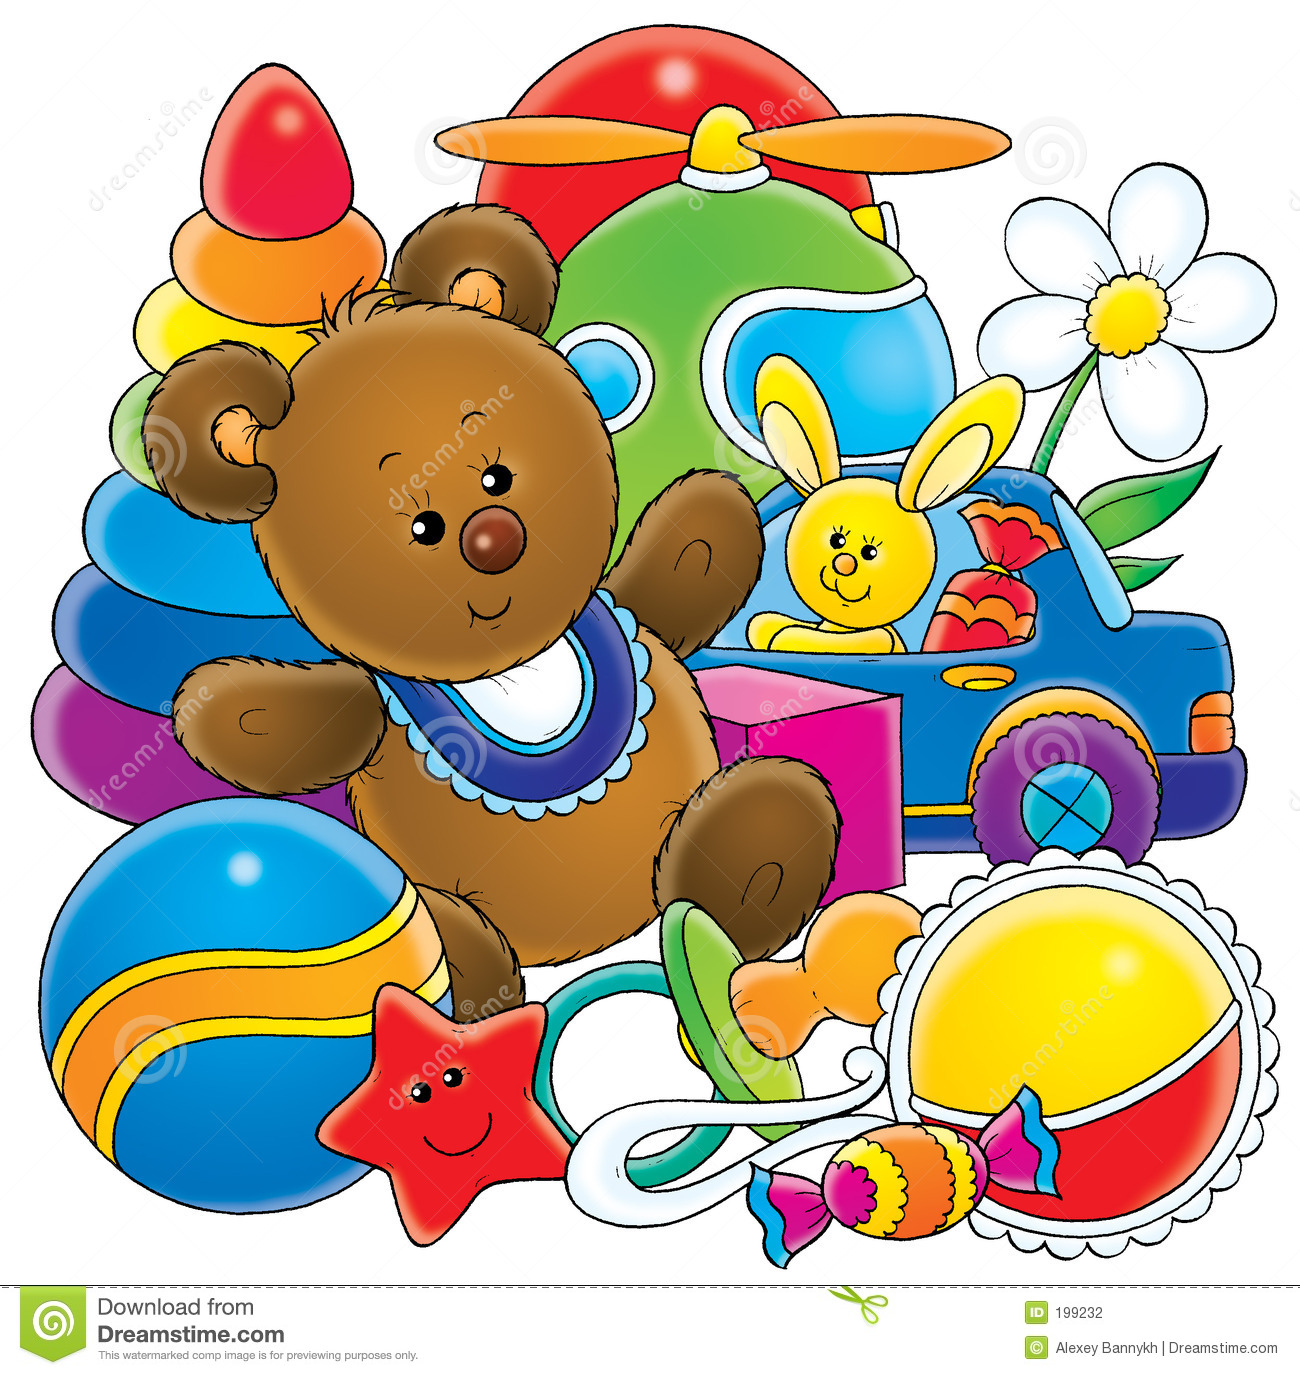 Toys stock illustration. Illustration of gifts, toys ...